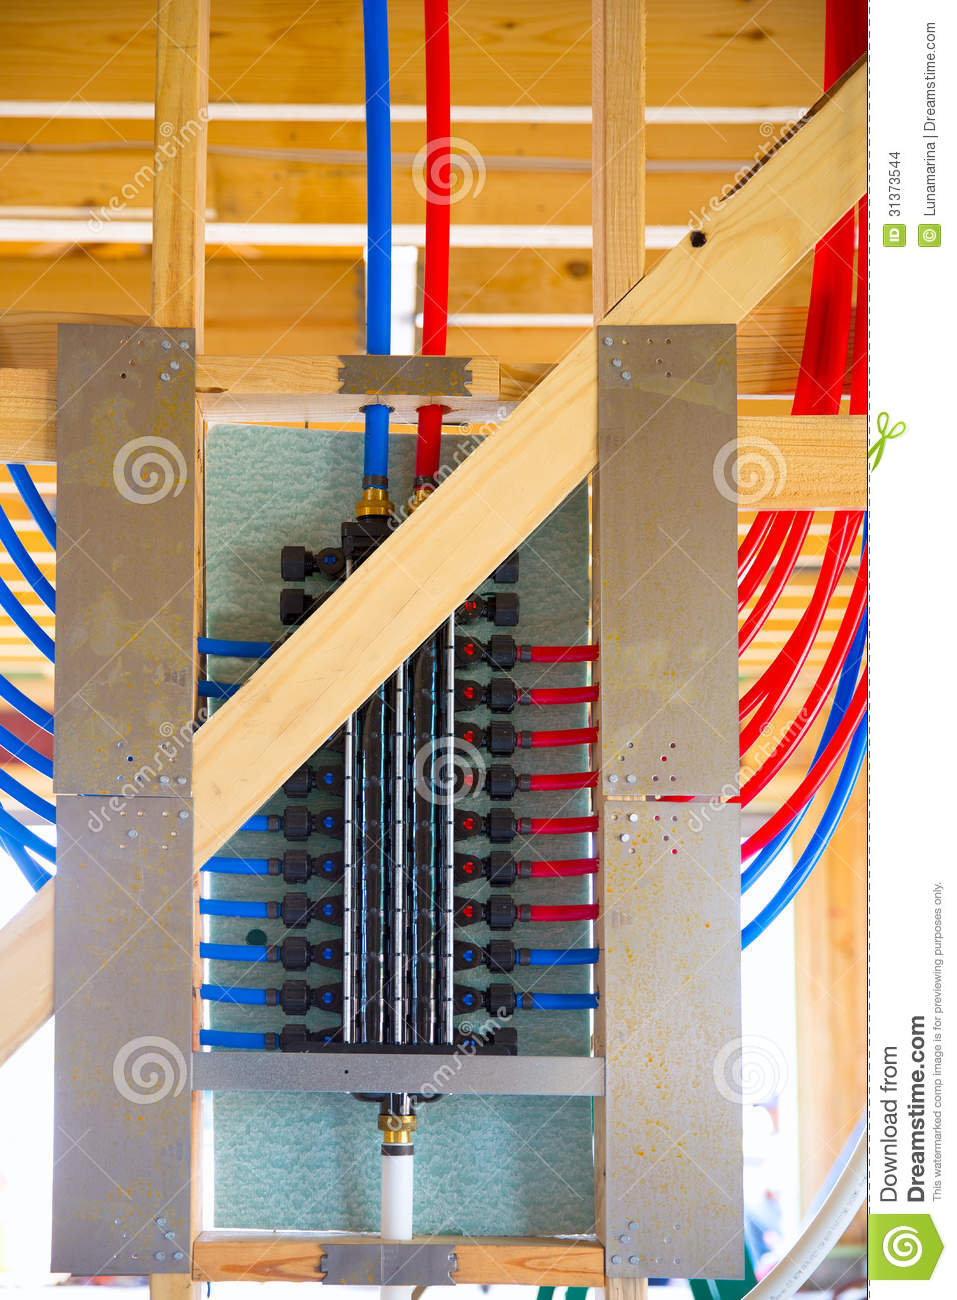 Plumbing Manifold System Pex Tubing Stock Photo